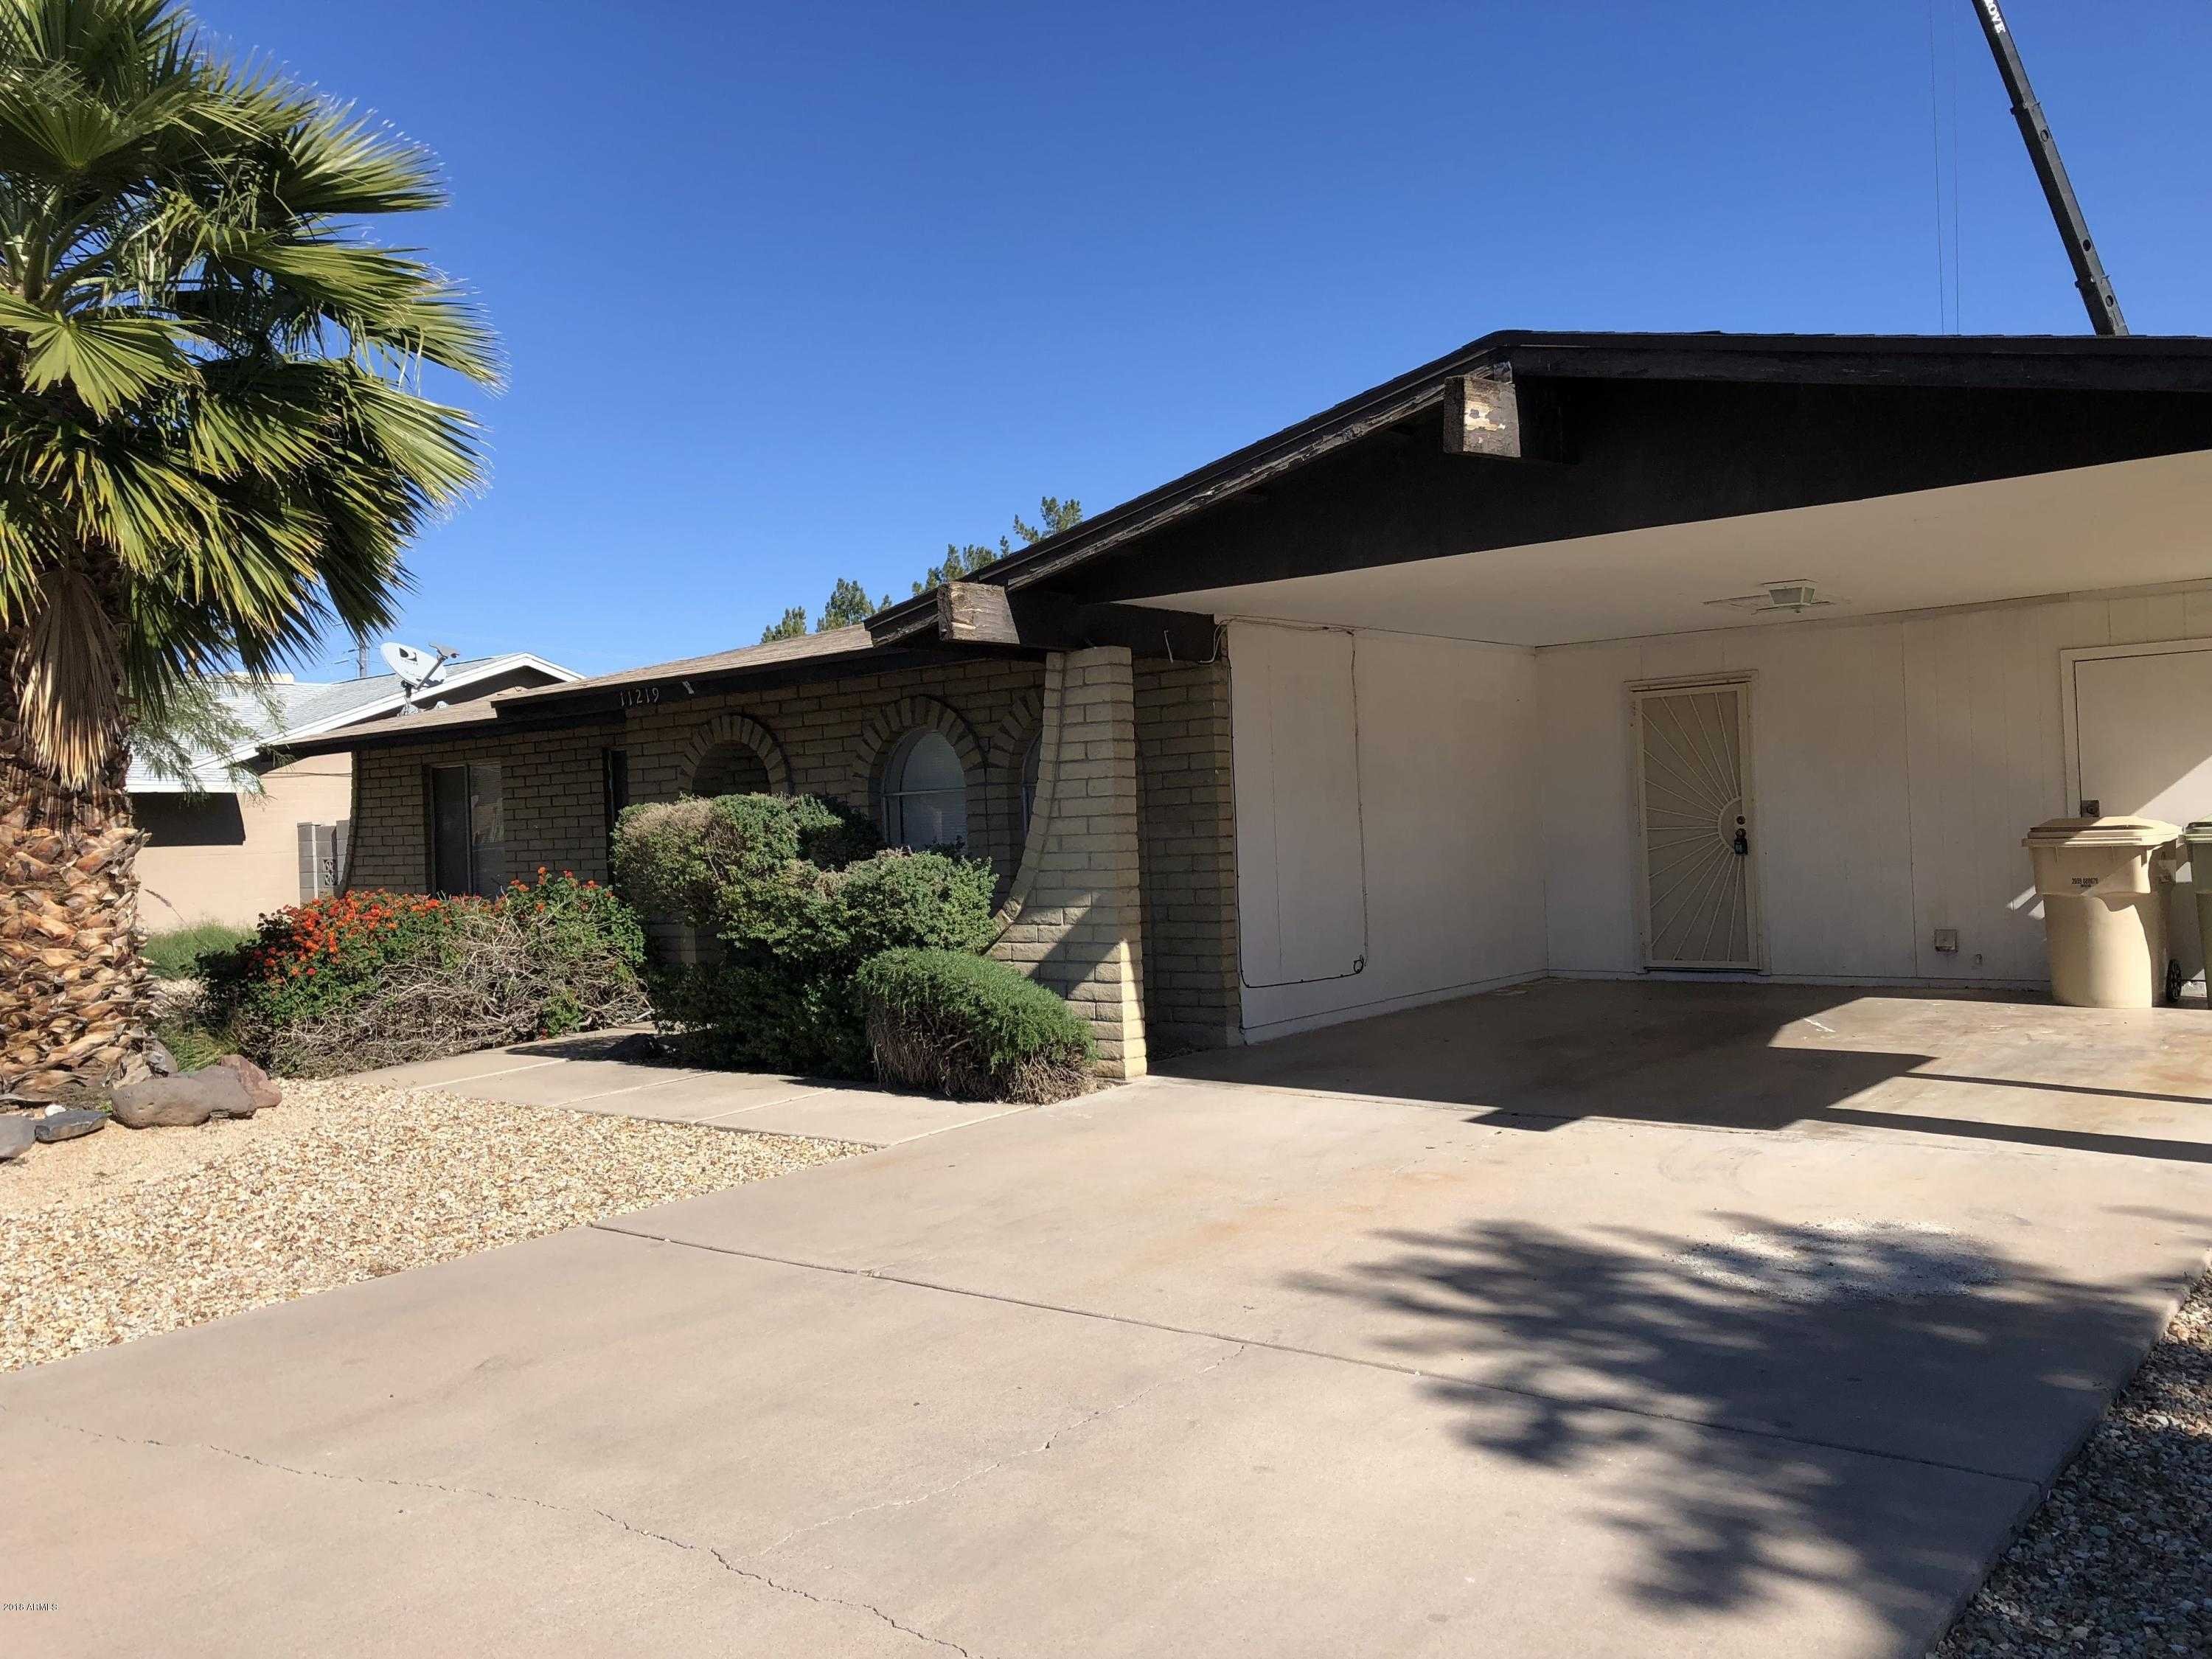 $249,000 - 3Br/2Ba - Home for Sale in Meadowcrest, Glendale